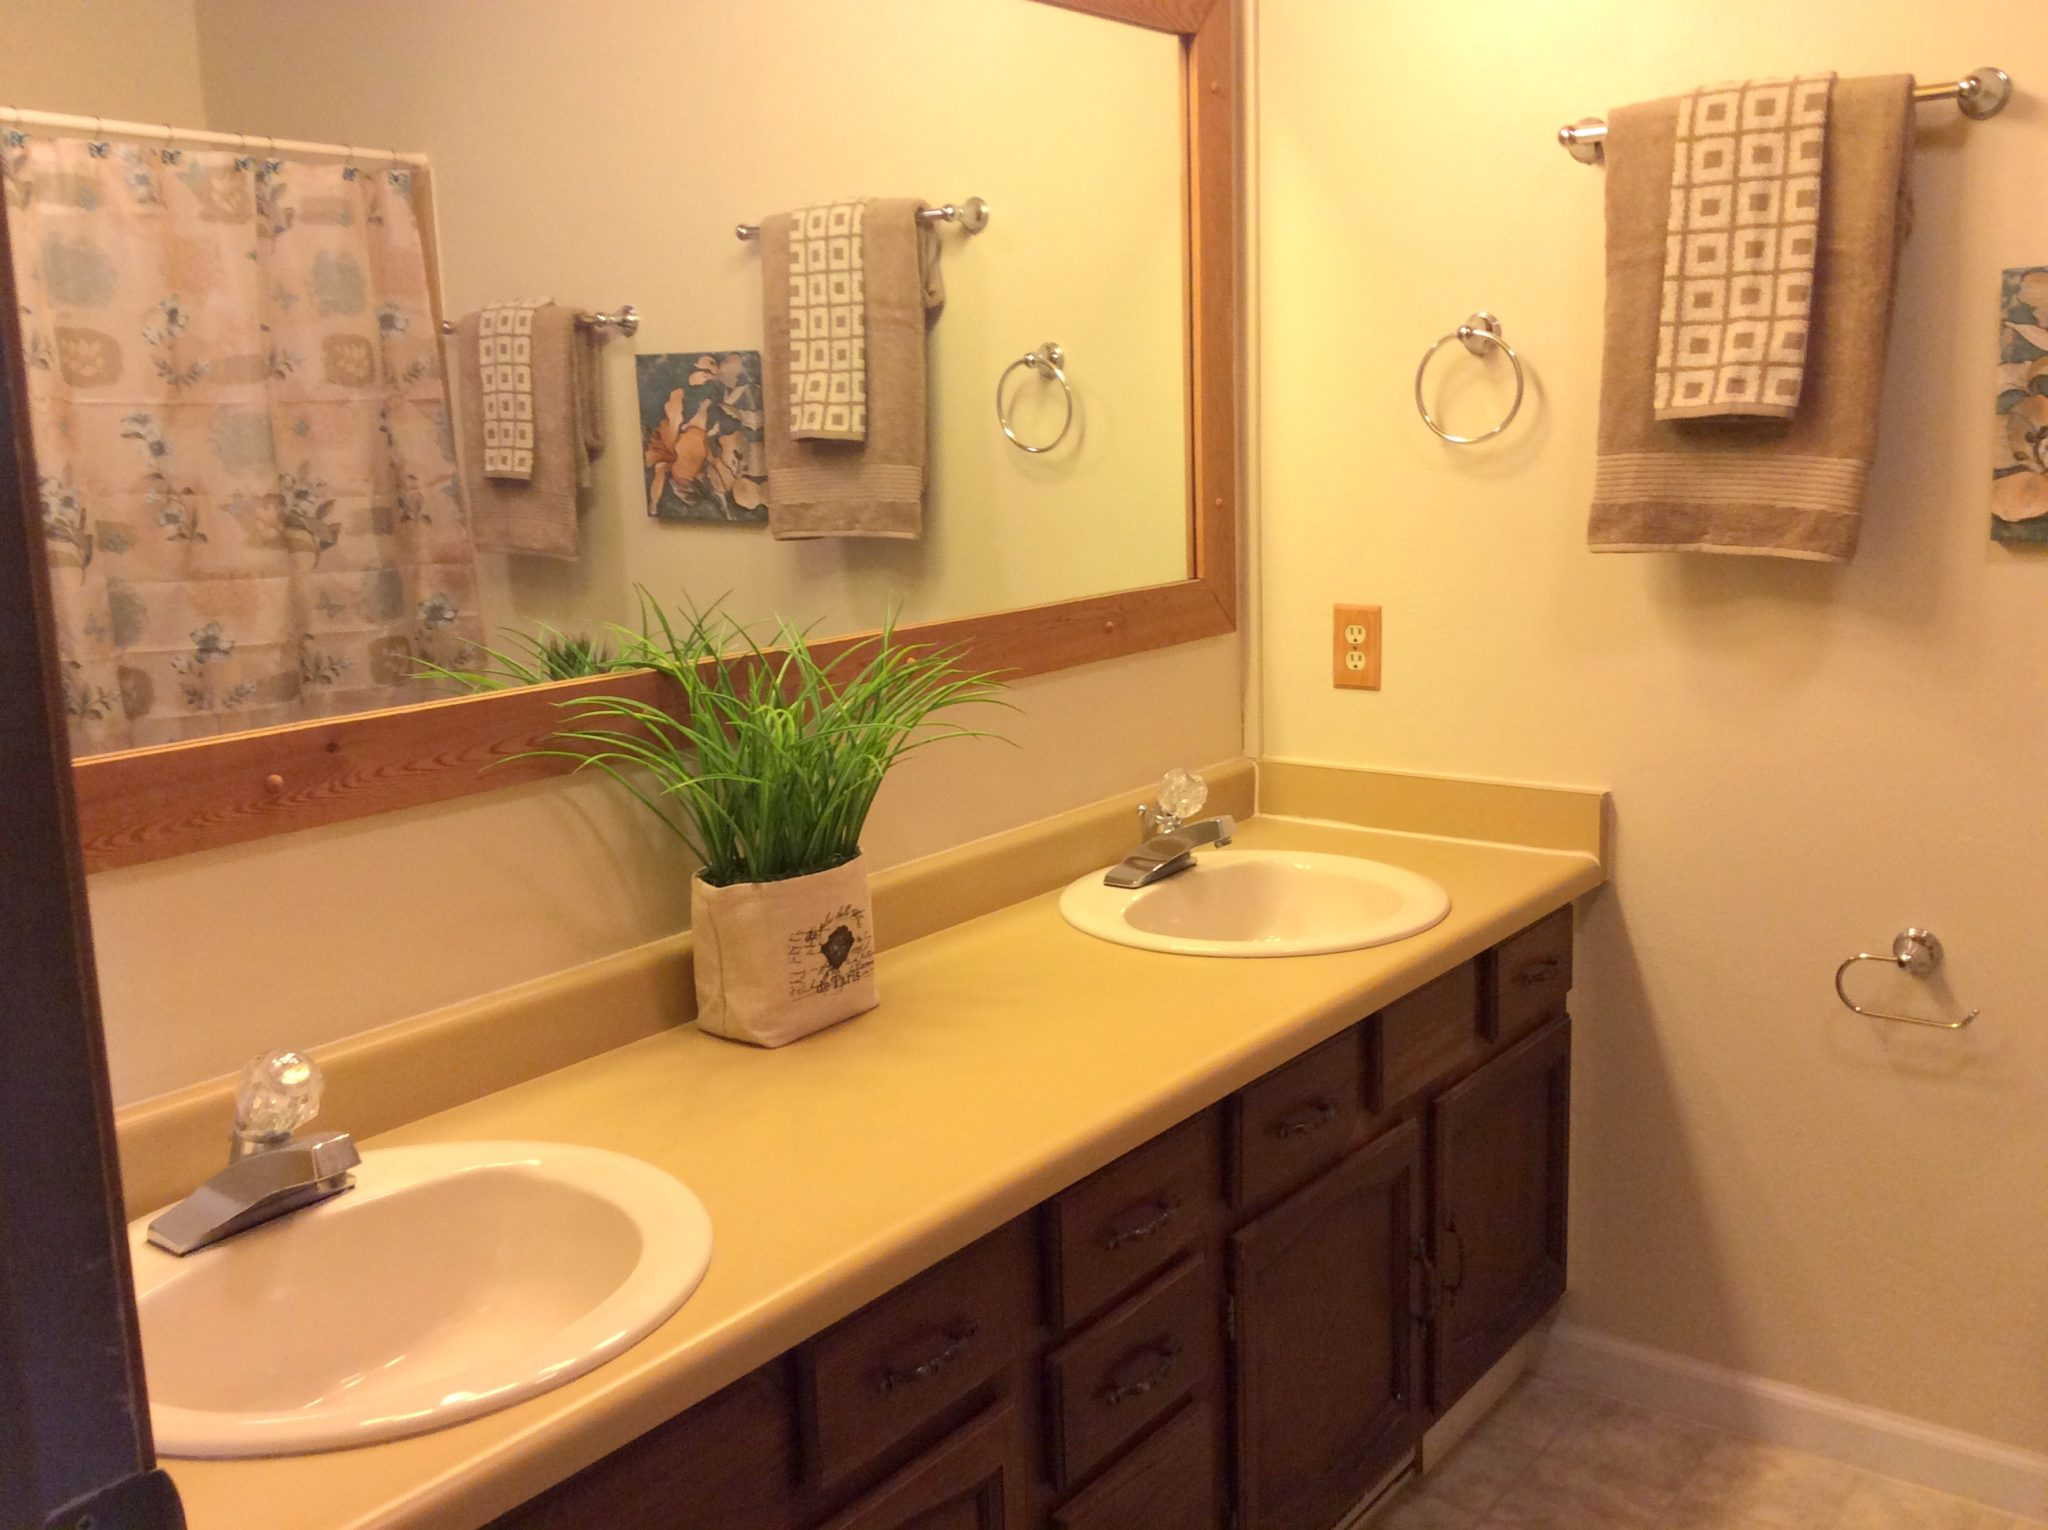 Bathroom- After Staging